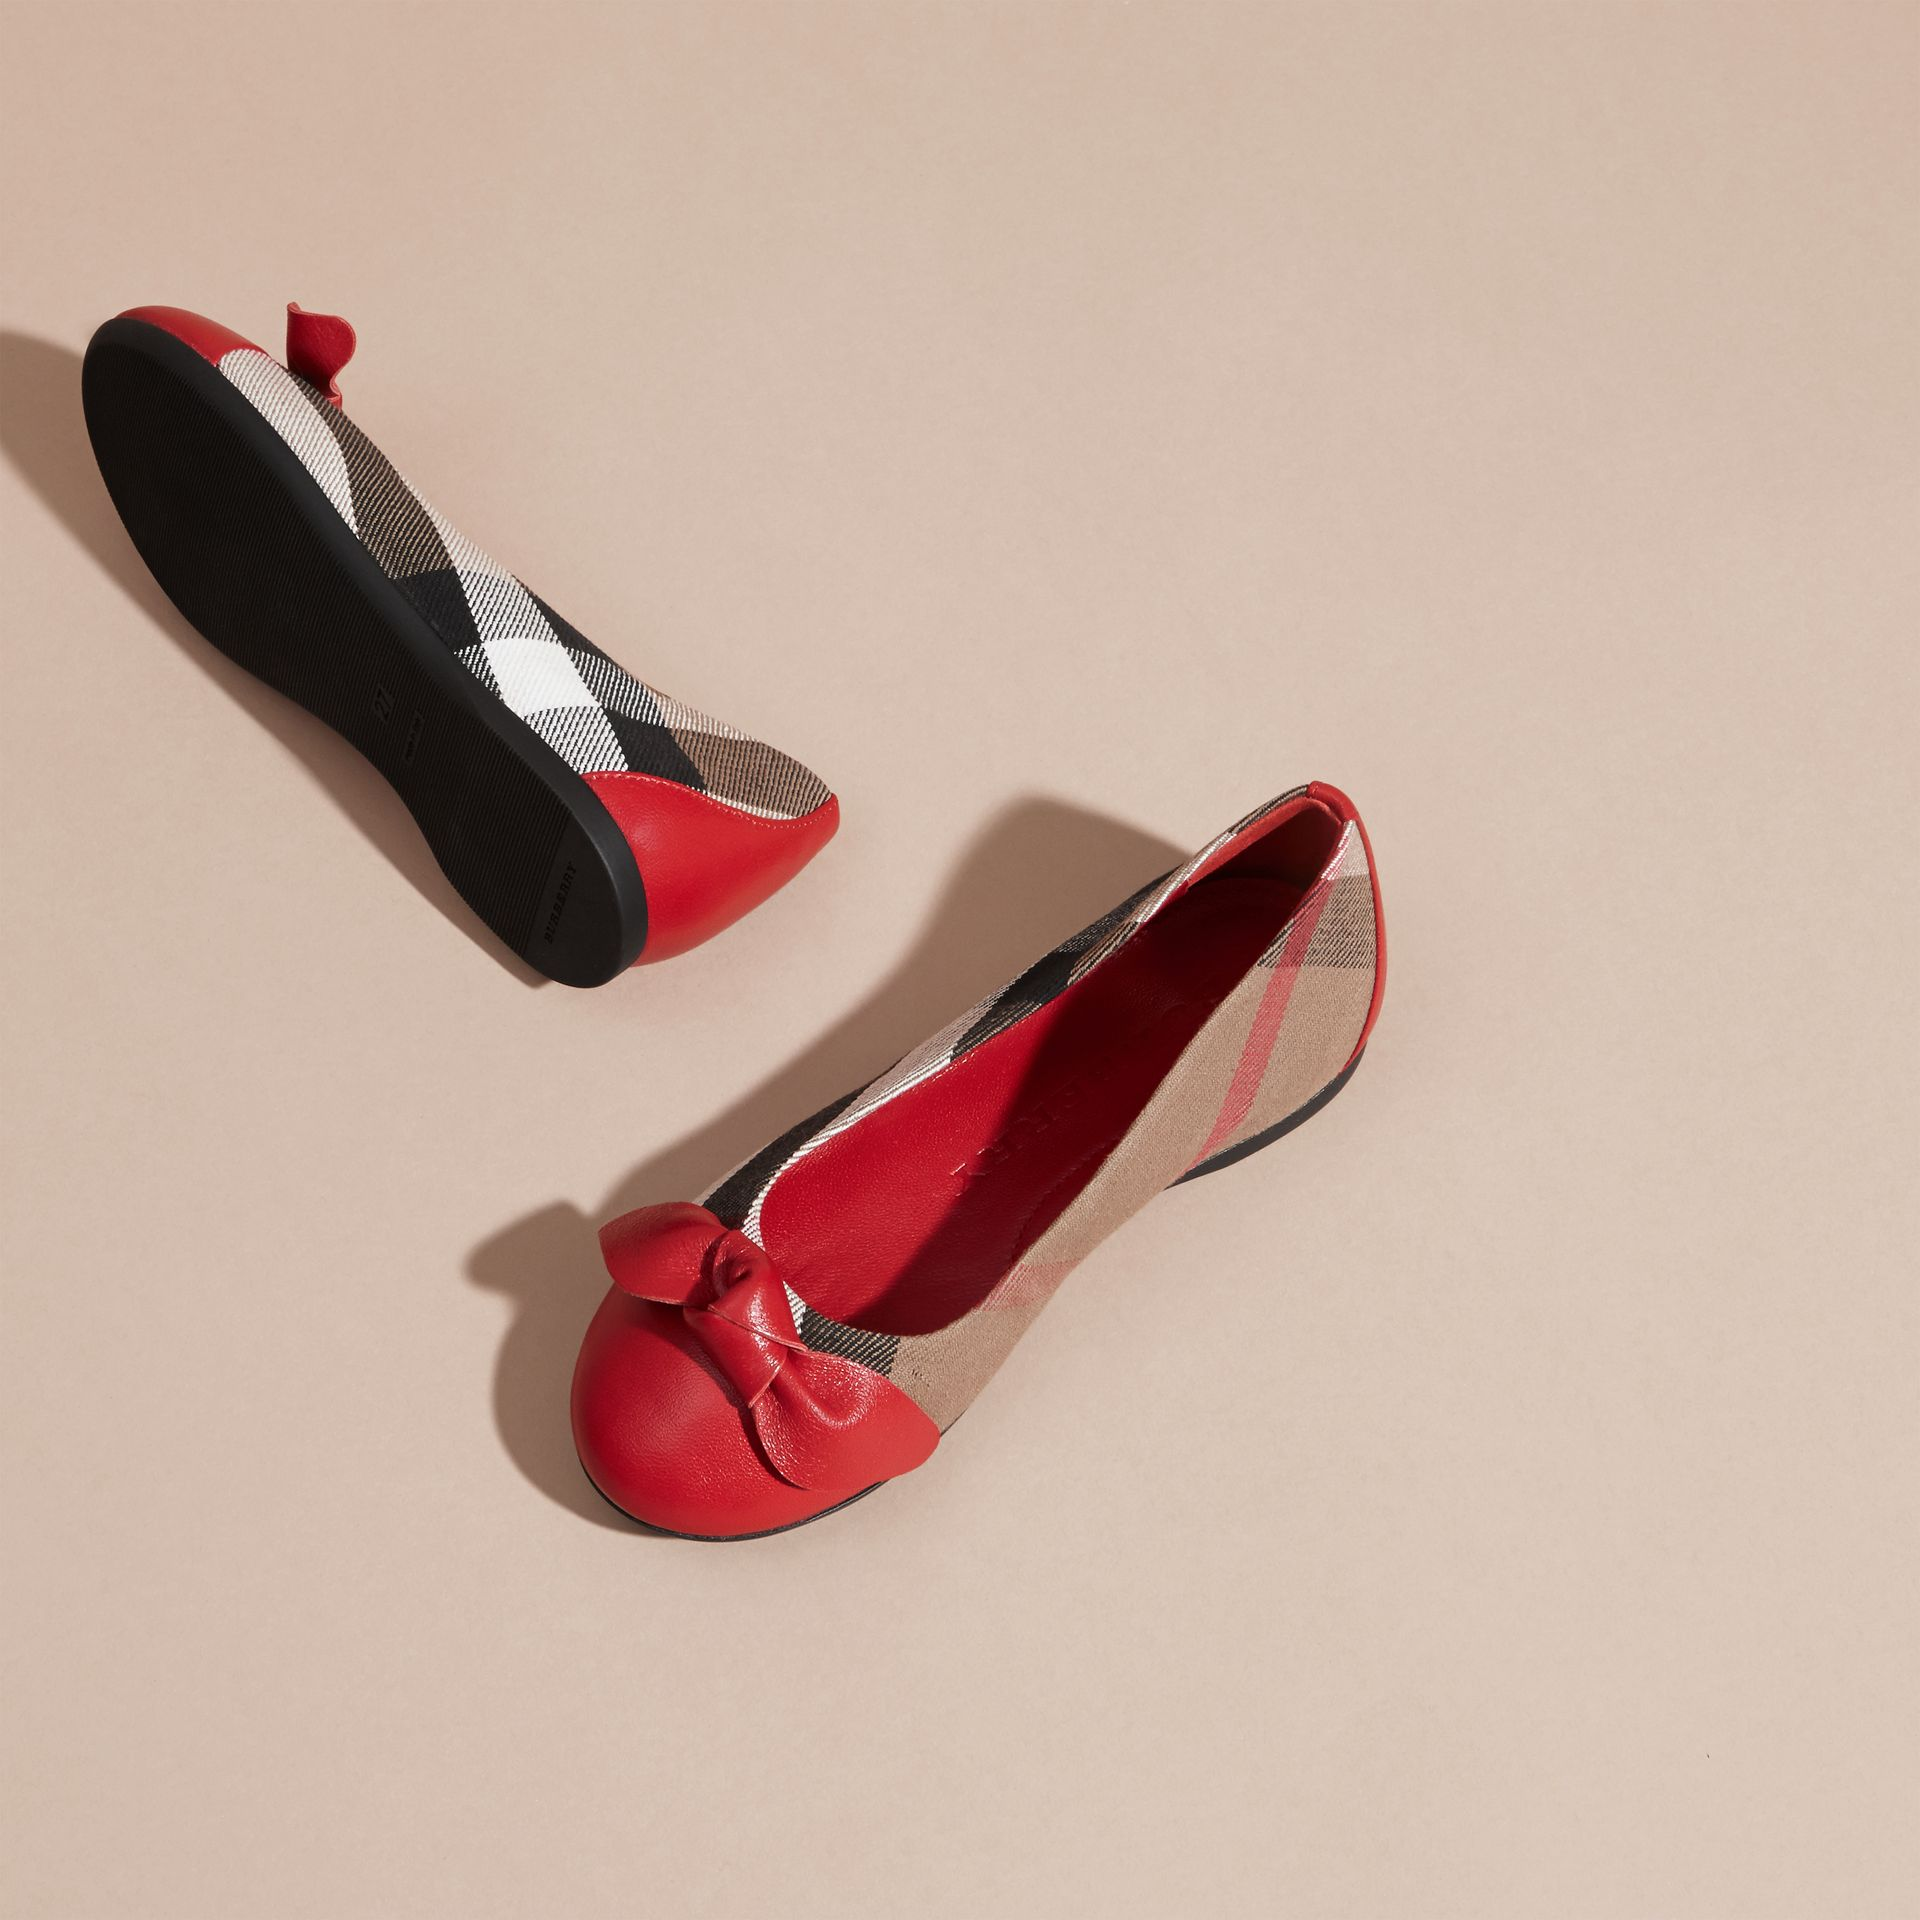 Ballerines en cuir et coton House check (Rouge Parade) - Fille | Burberry - photo de la galerie 3